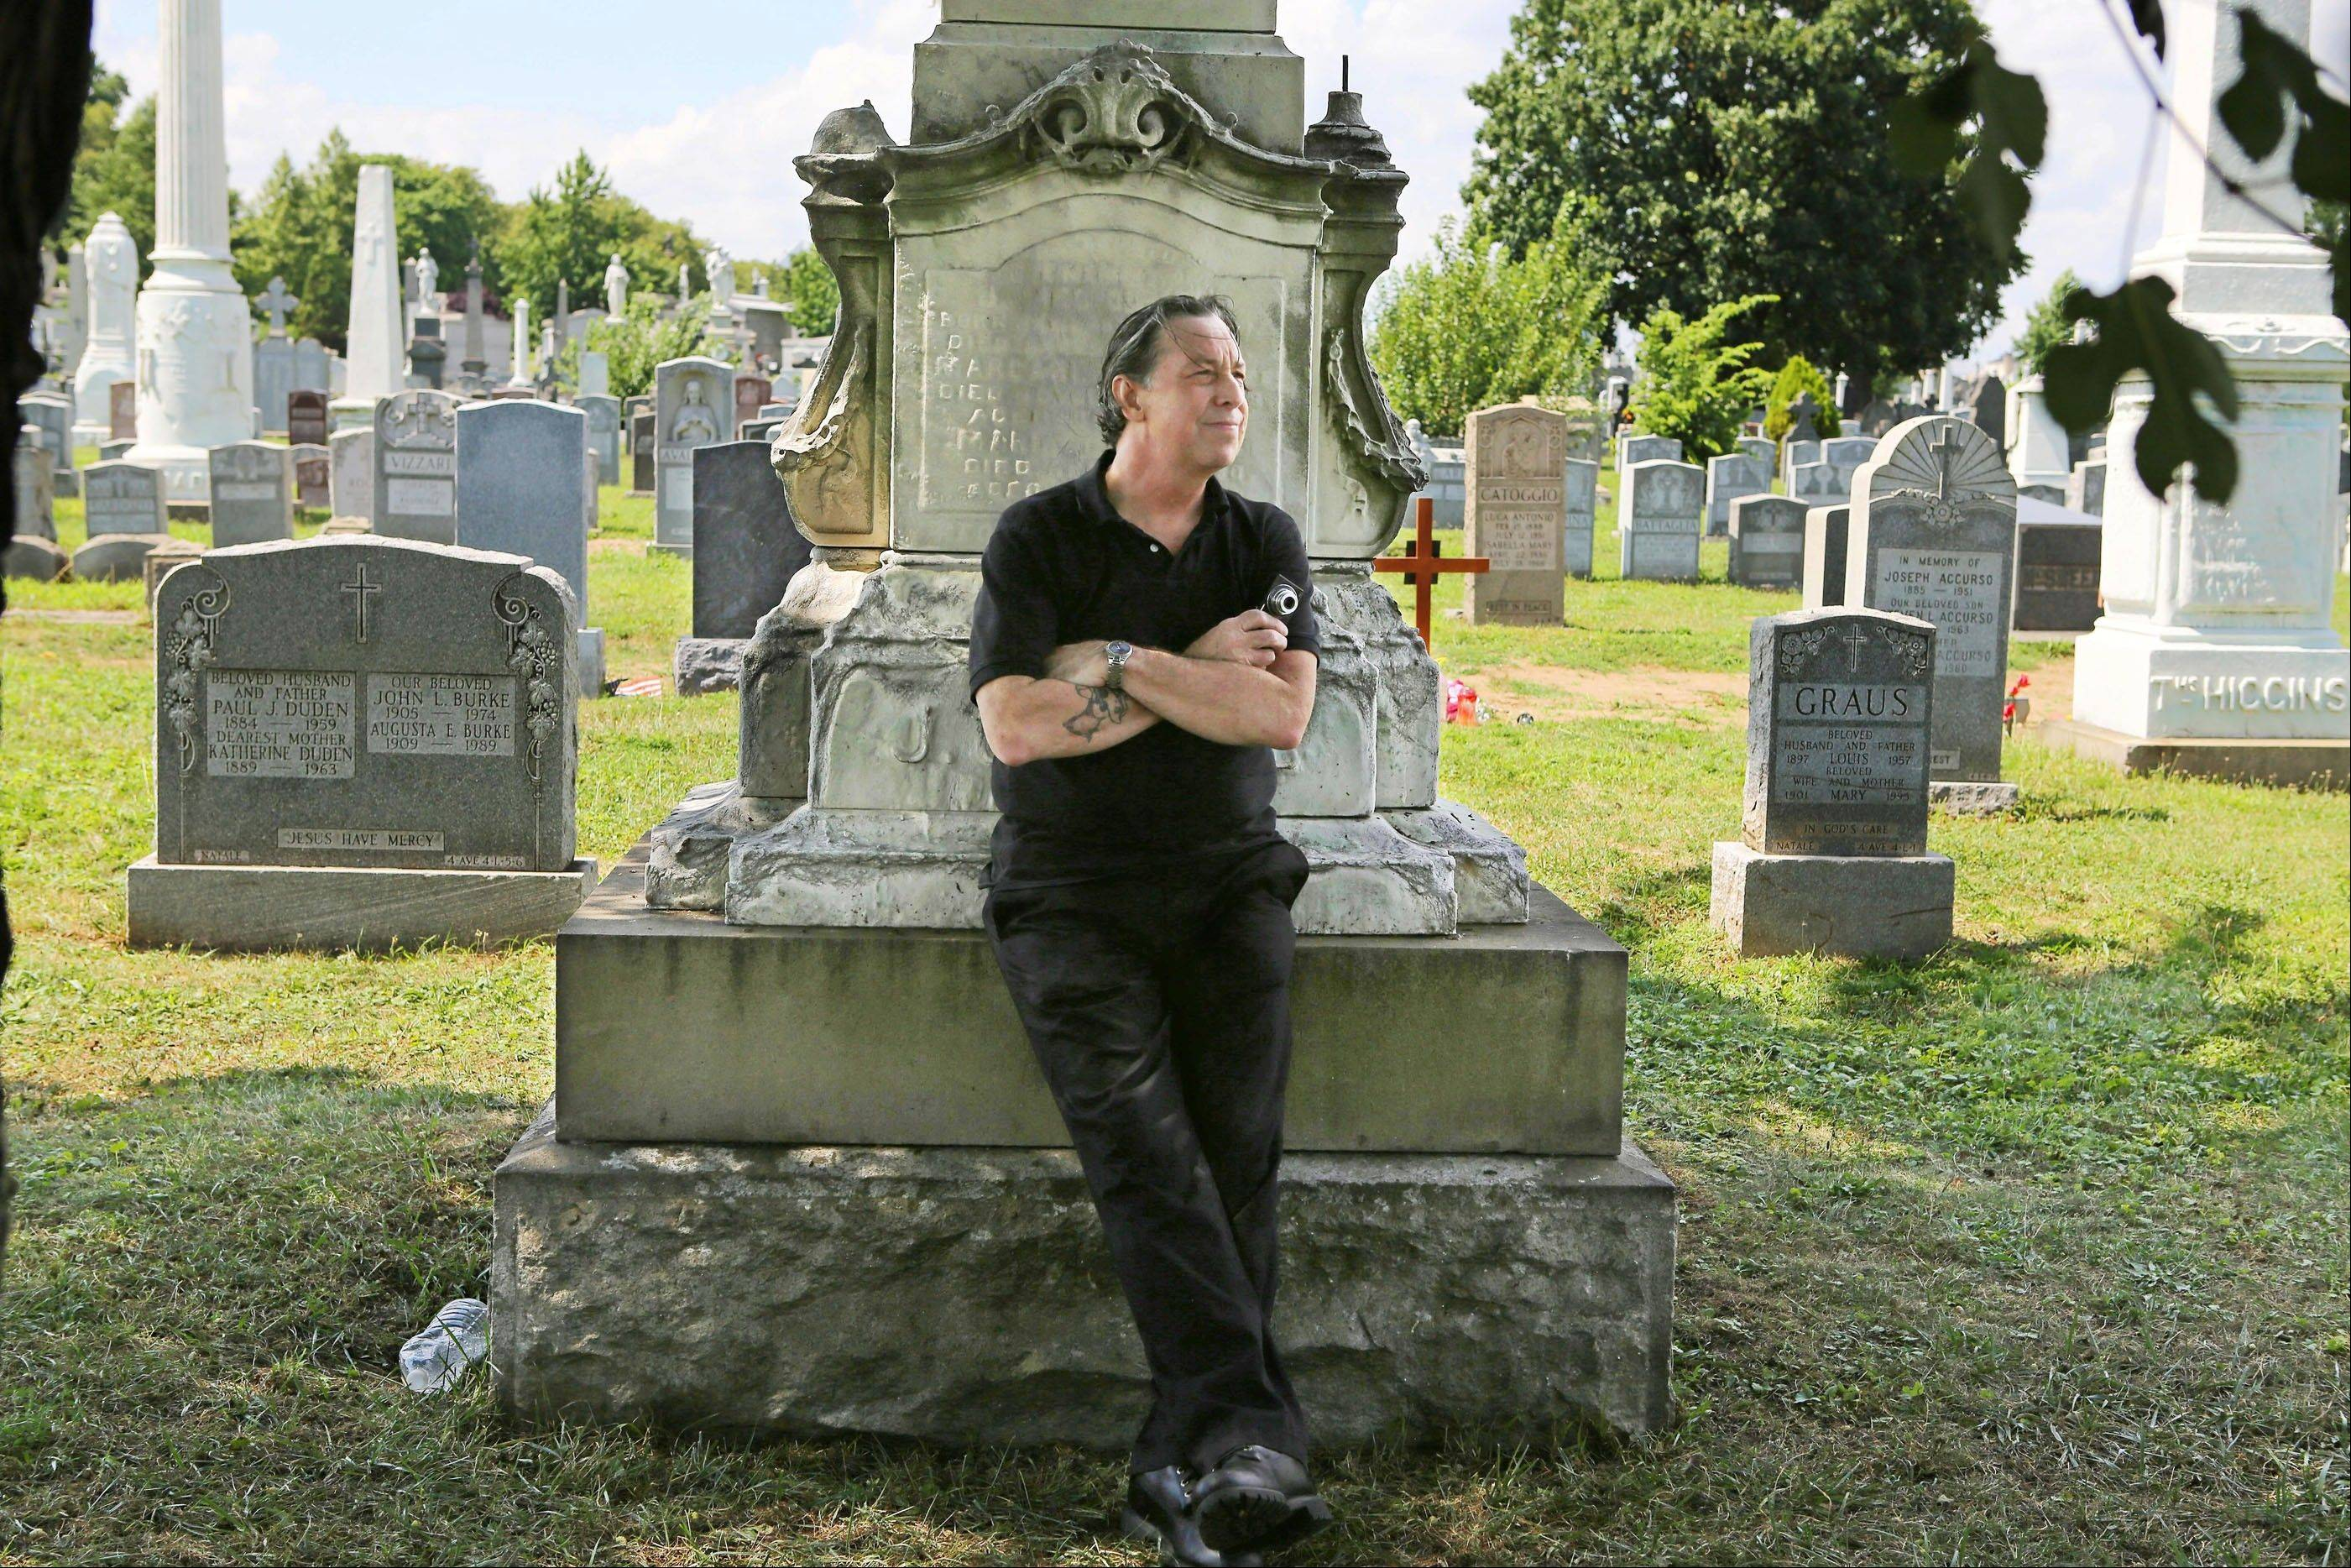 "Patric Abedin, who also goes by the name, ""Nick Beef,"" poses for a photo among the grave markers at Calvary Cemetery in the Queens borough of New York. In 1975 Abedin bought the grave plot next to where presidential assassin Lee Harvey Oswald is buried, and then placed the granite marker inscribed with Nick Beef there in 1997."